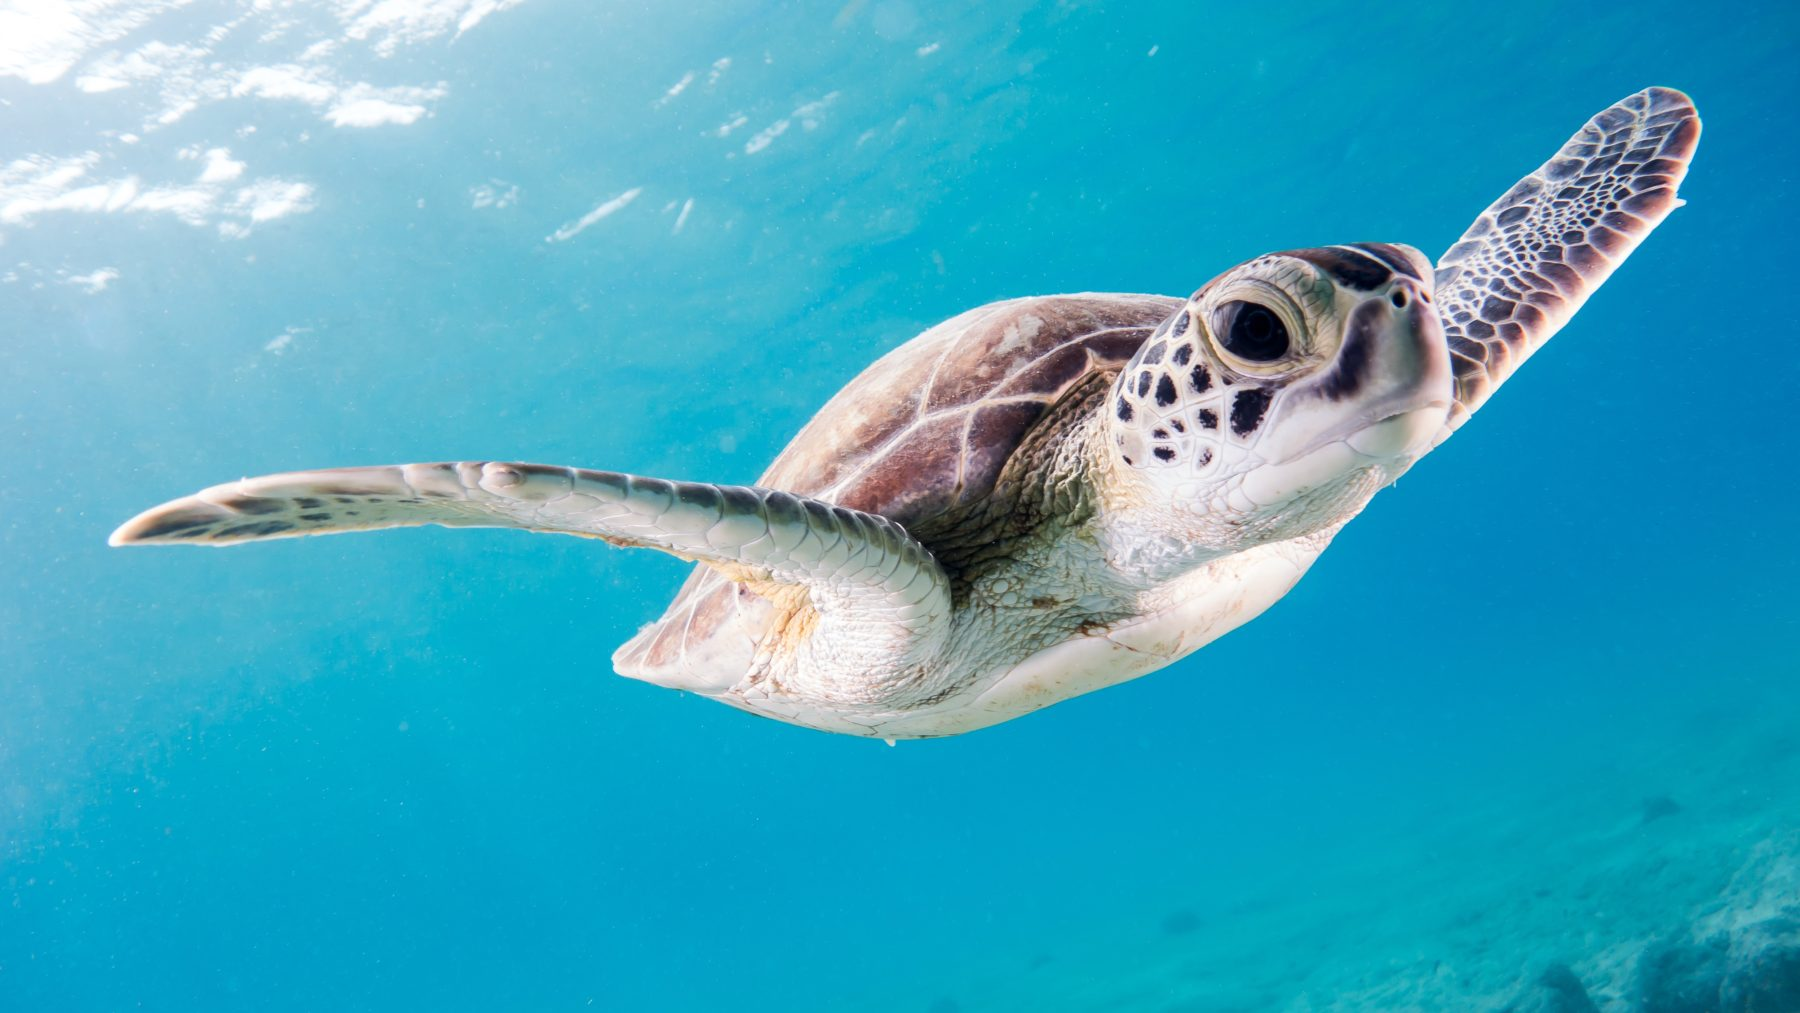 The Effects that Climate Change has on Sea Turtles